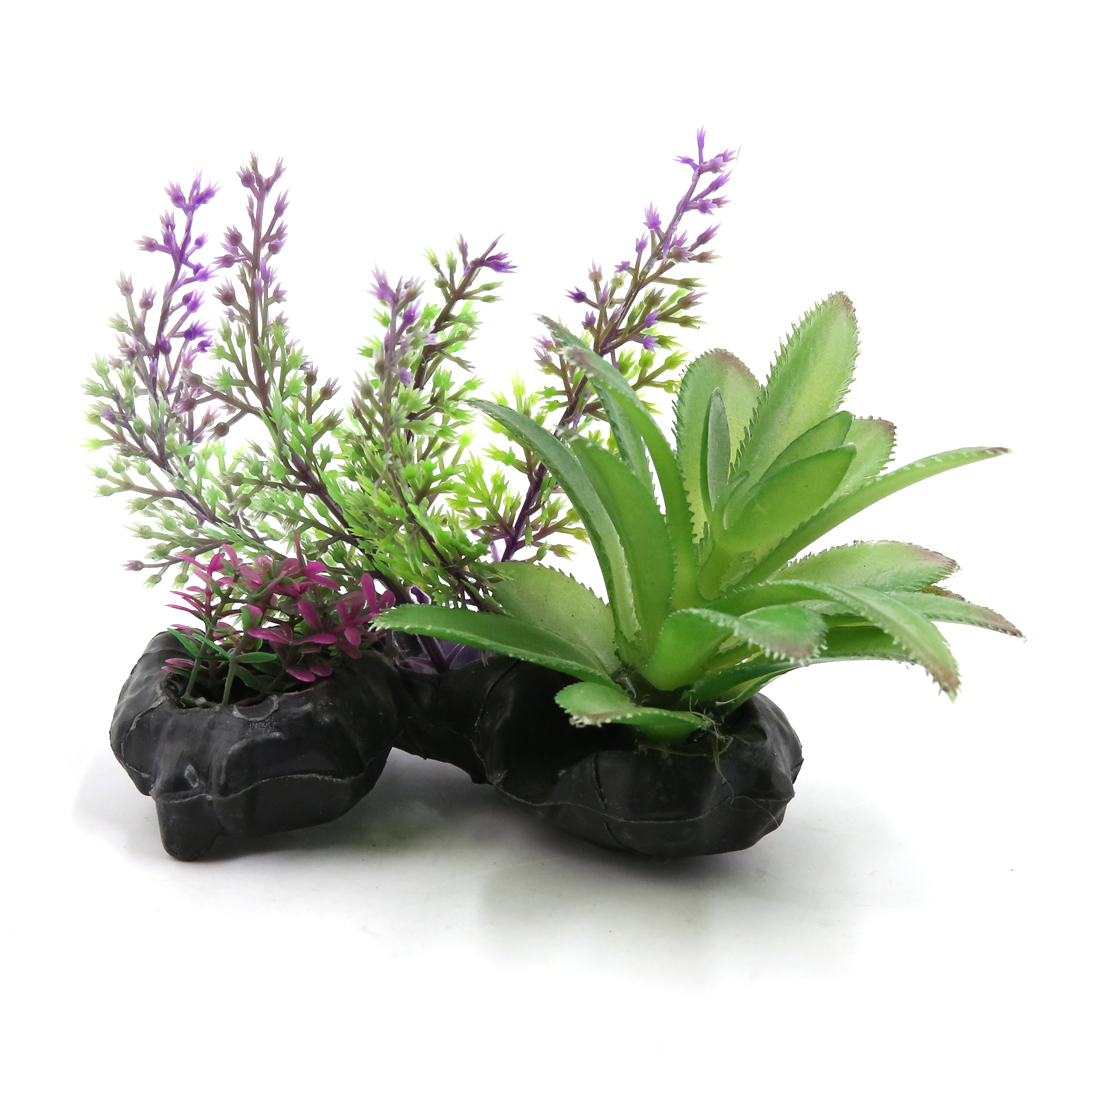 Purple Plastic Fish Tank Terrarium Plants Ceramic Base Decoration for Reptiles